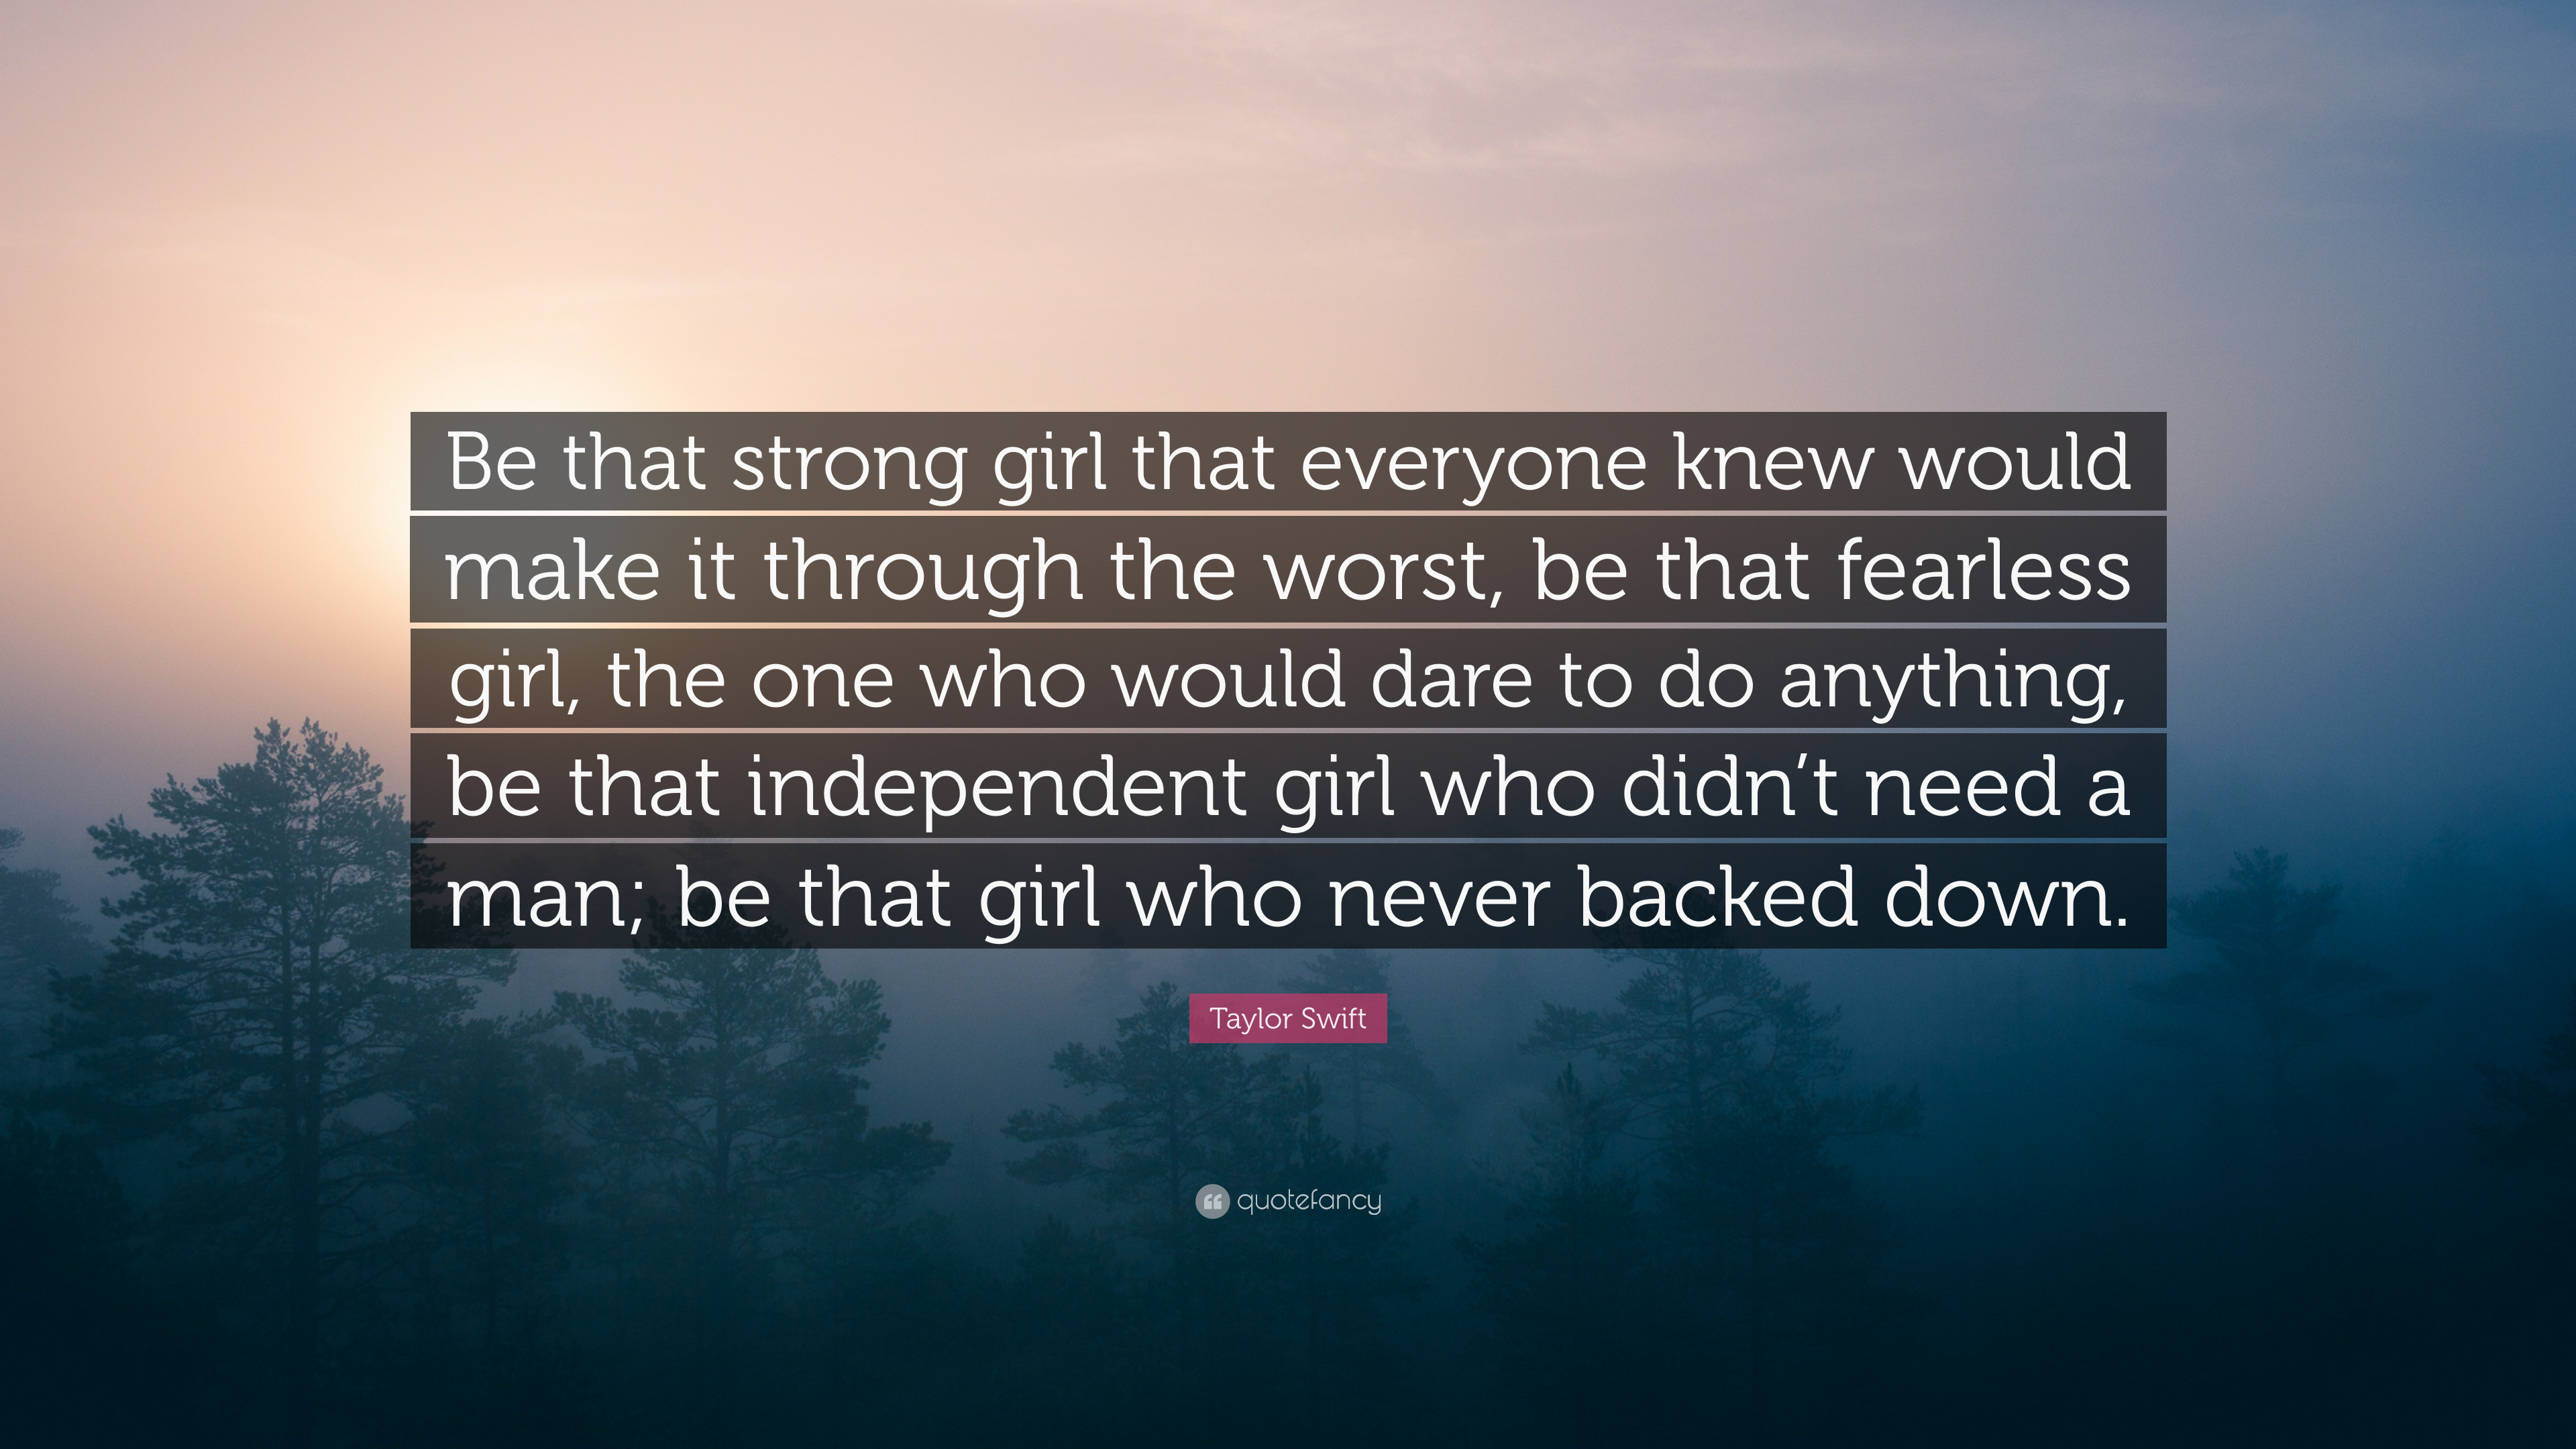 Taylor swift quote be that strong girl that everyone knew would make it through